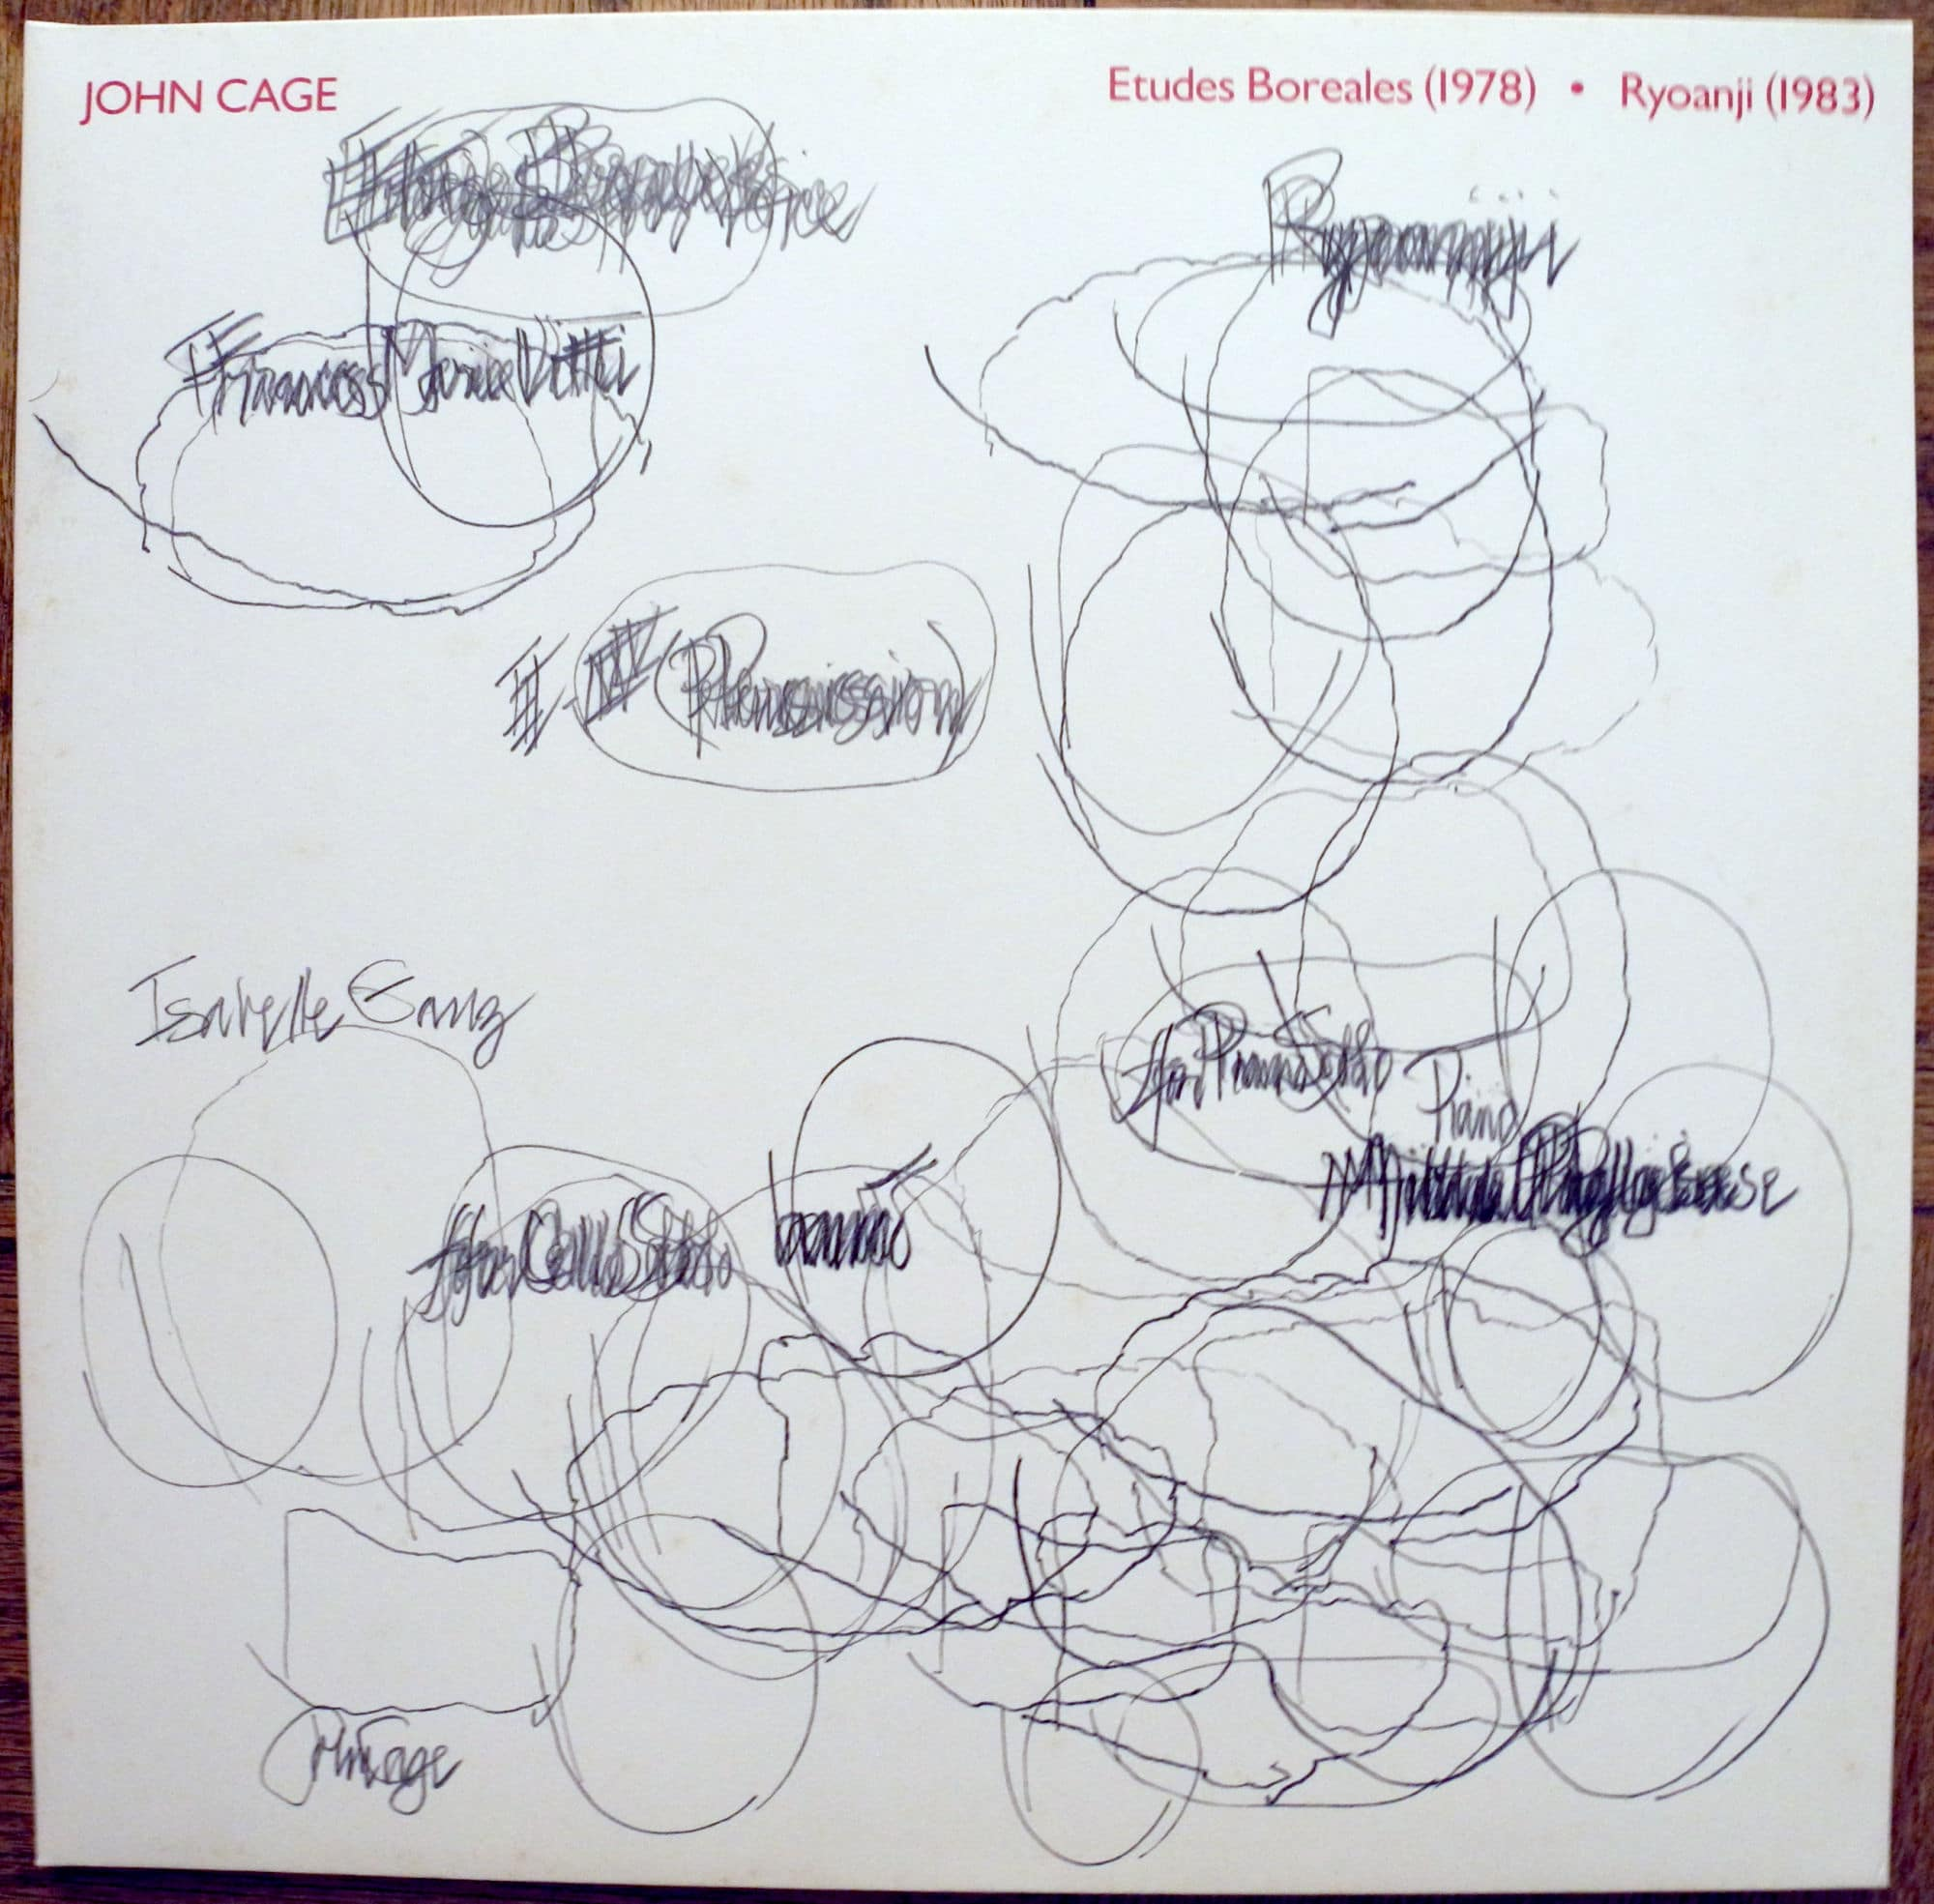 John Cage drew the cover for Mode Record's first release, on vinyl, in 1984.